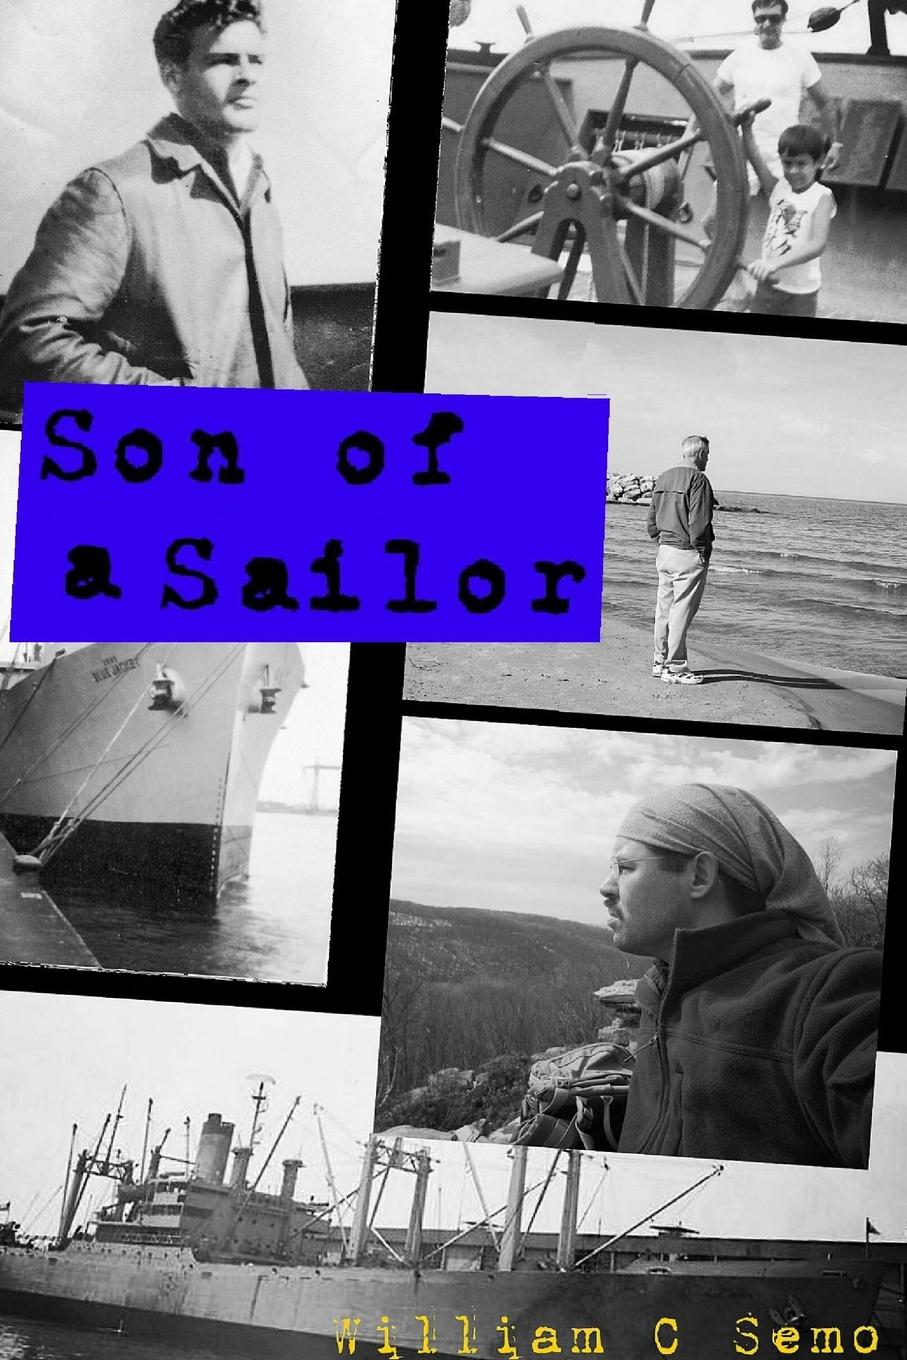 William Semo Son Of A Sailor First Edition lisa jardine the awful end of prince william the silent the first assassination of a head of state with a hand gun